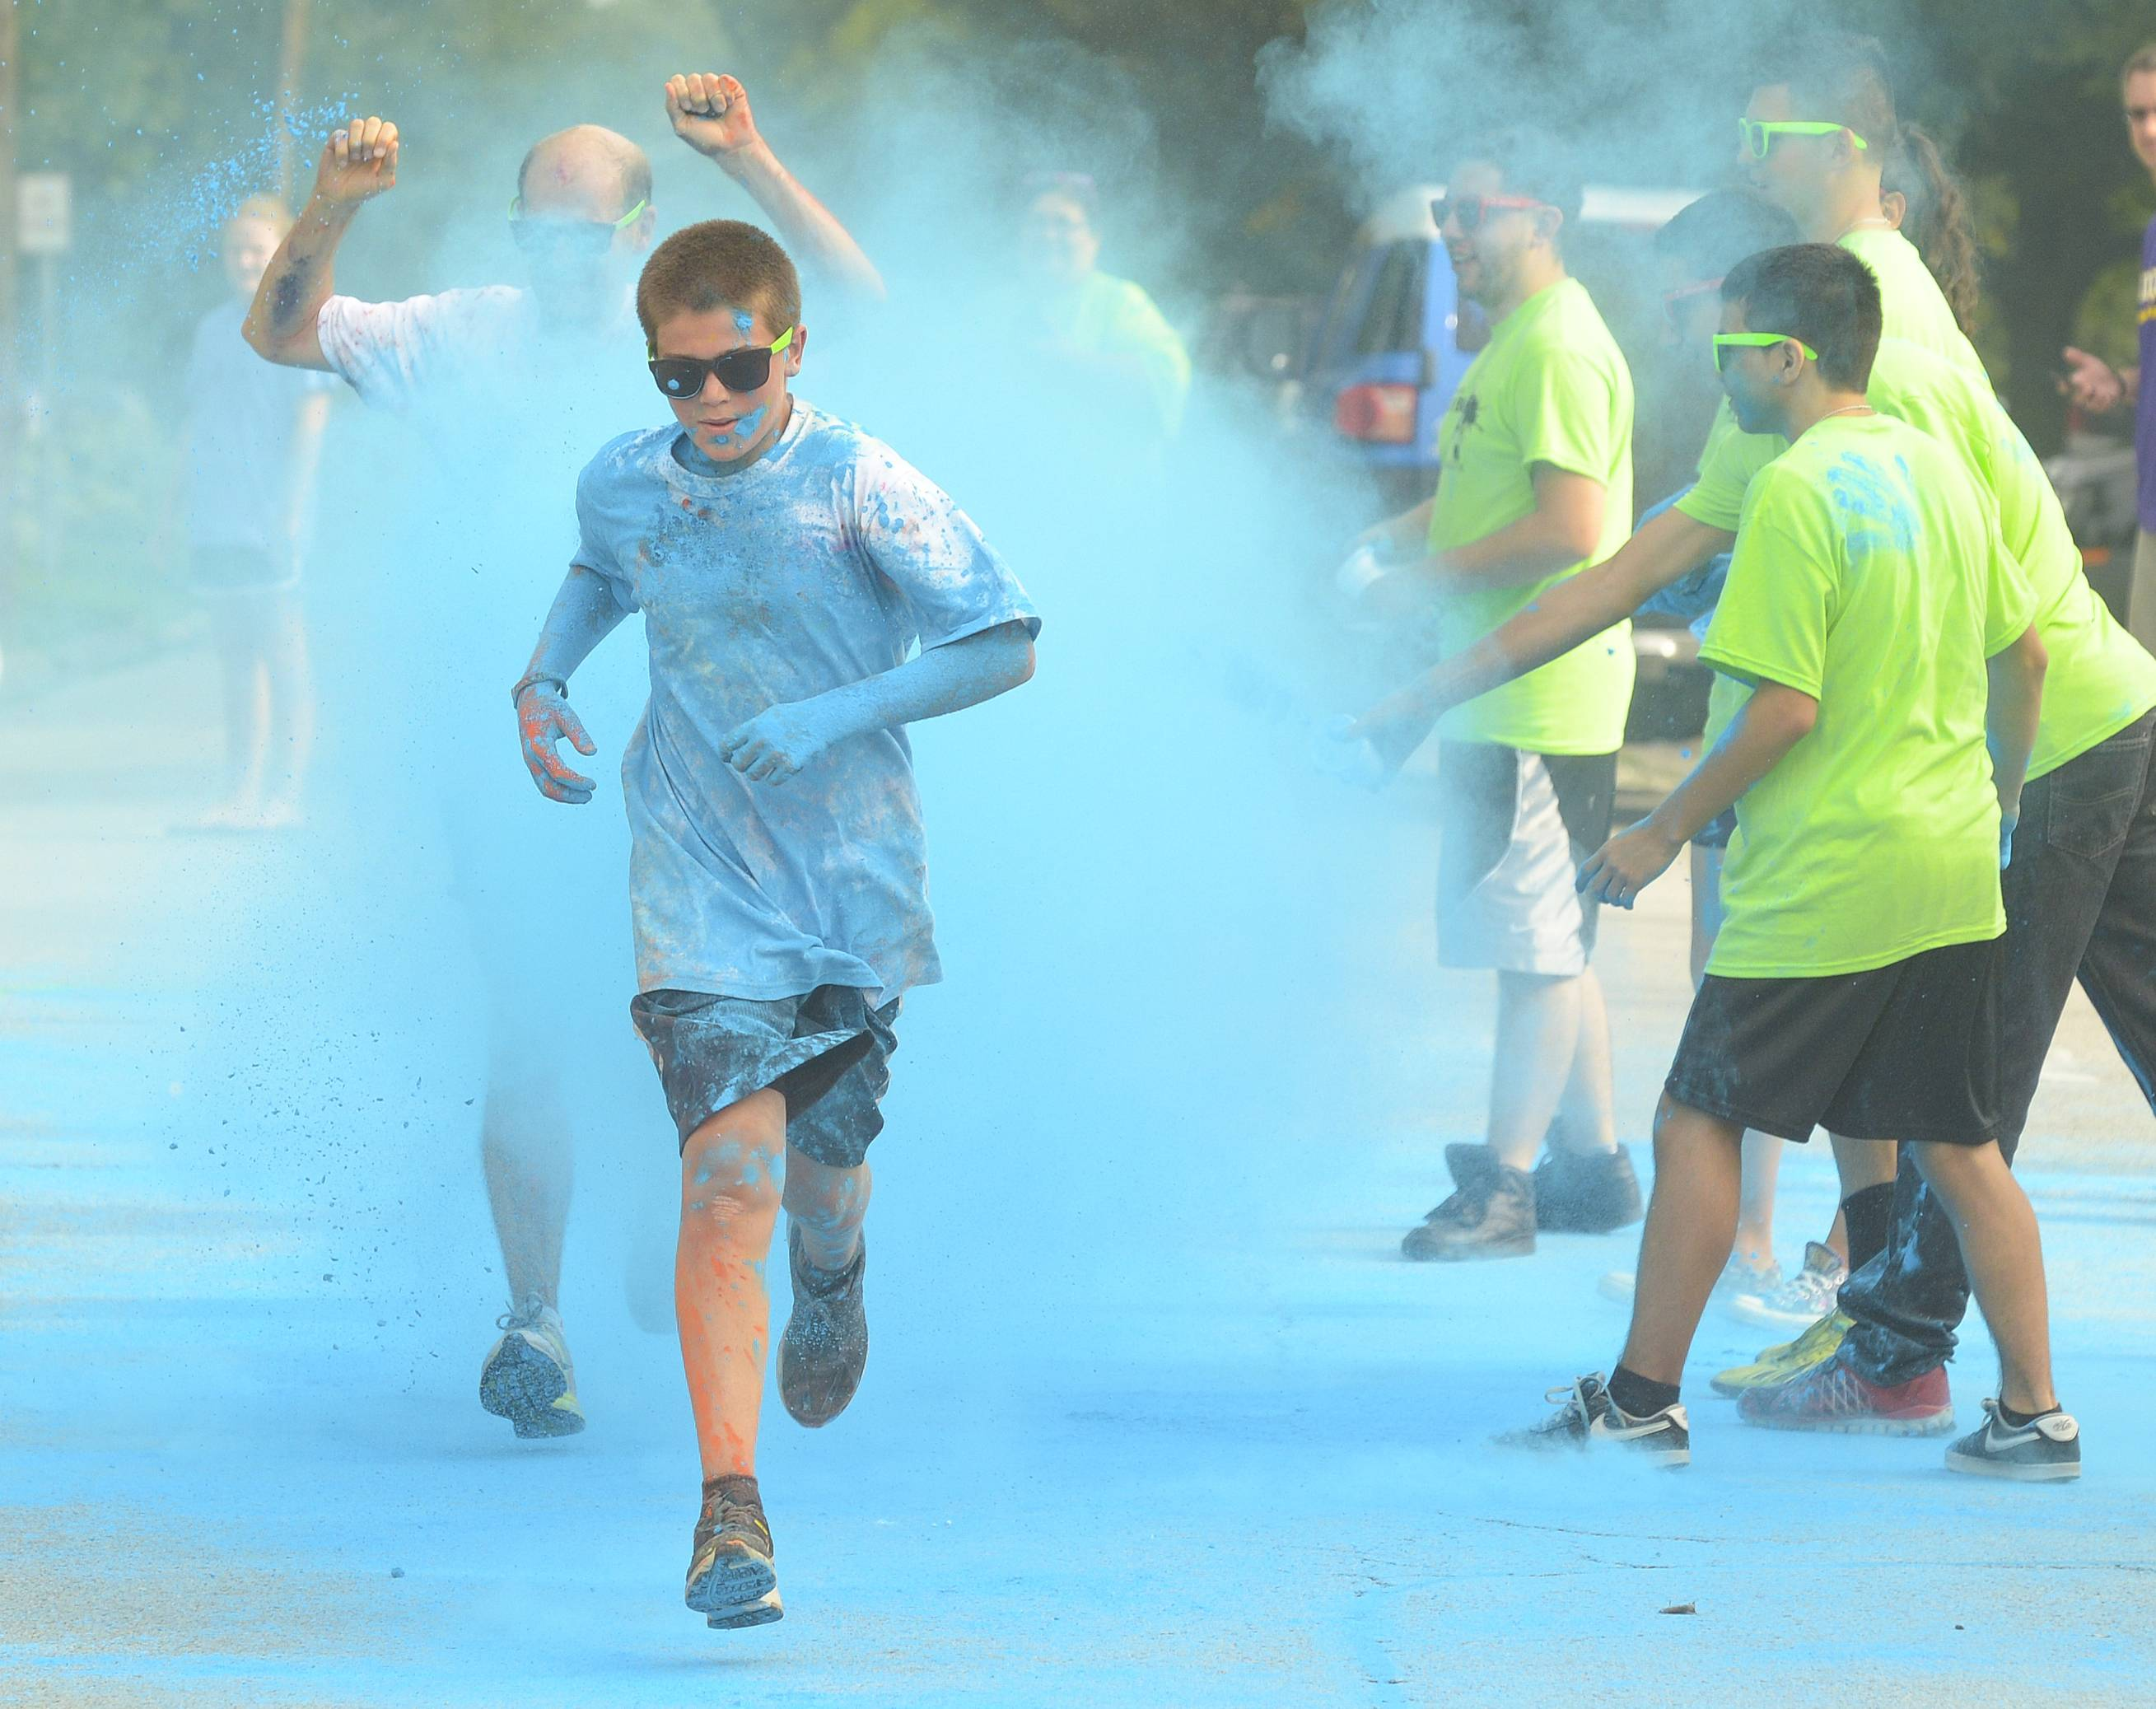 Max Wexley, 12 of Palatine crosses the finish line and gets pelted with colored powder Saturday during the 2nd annual Active Care ColorBlast 5K in Arlington Heights to support Clearbrook.